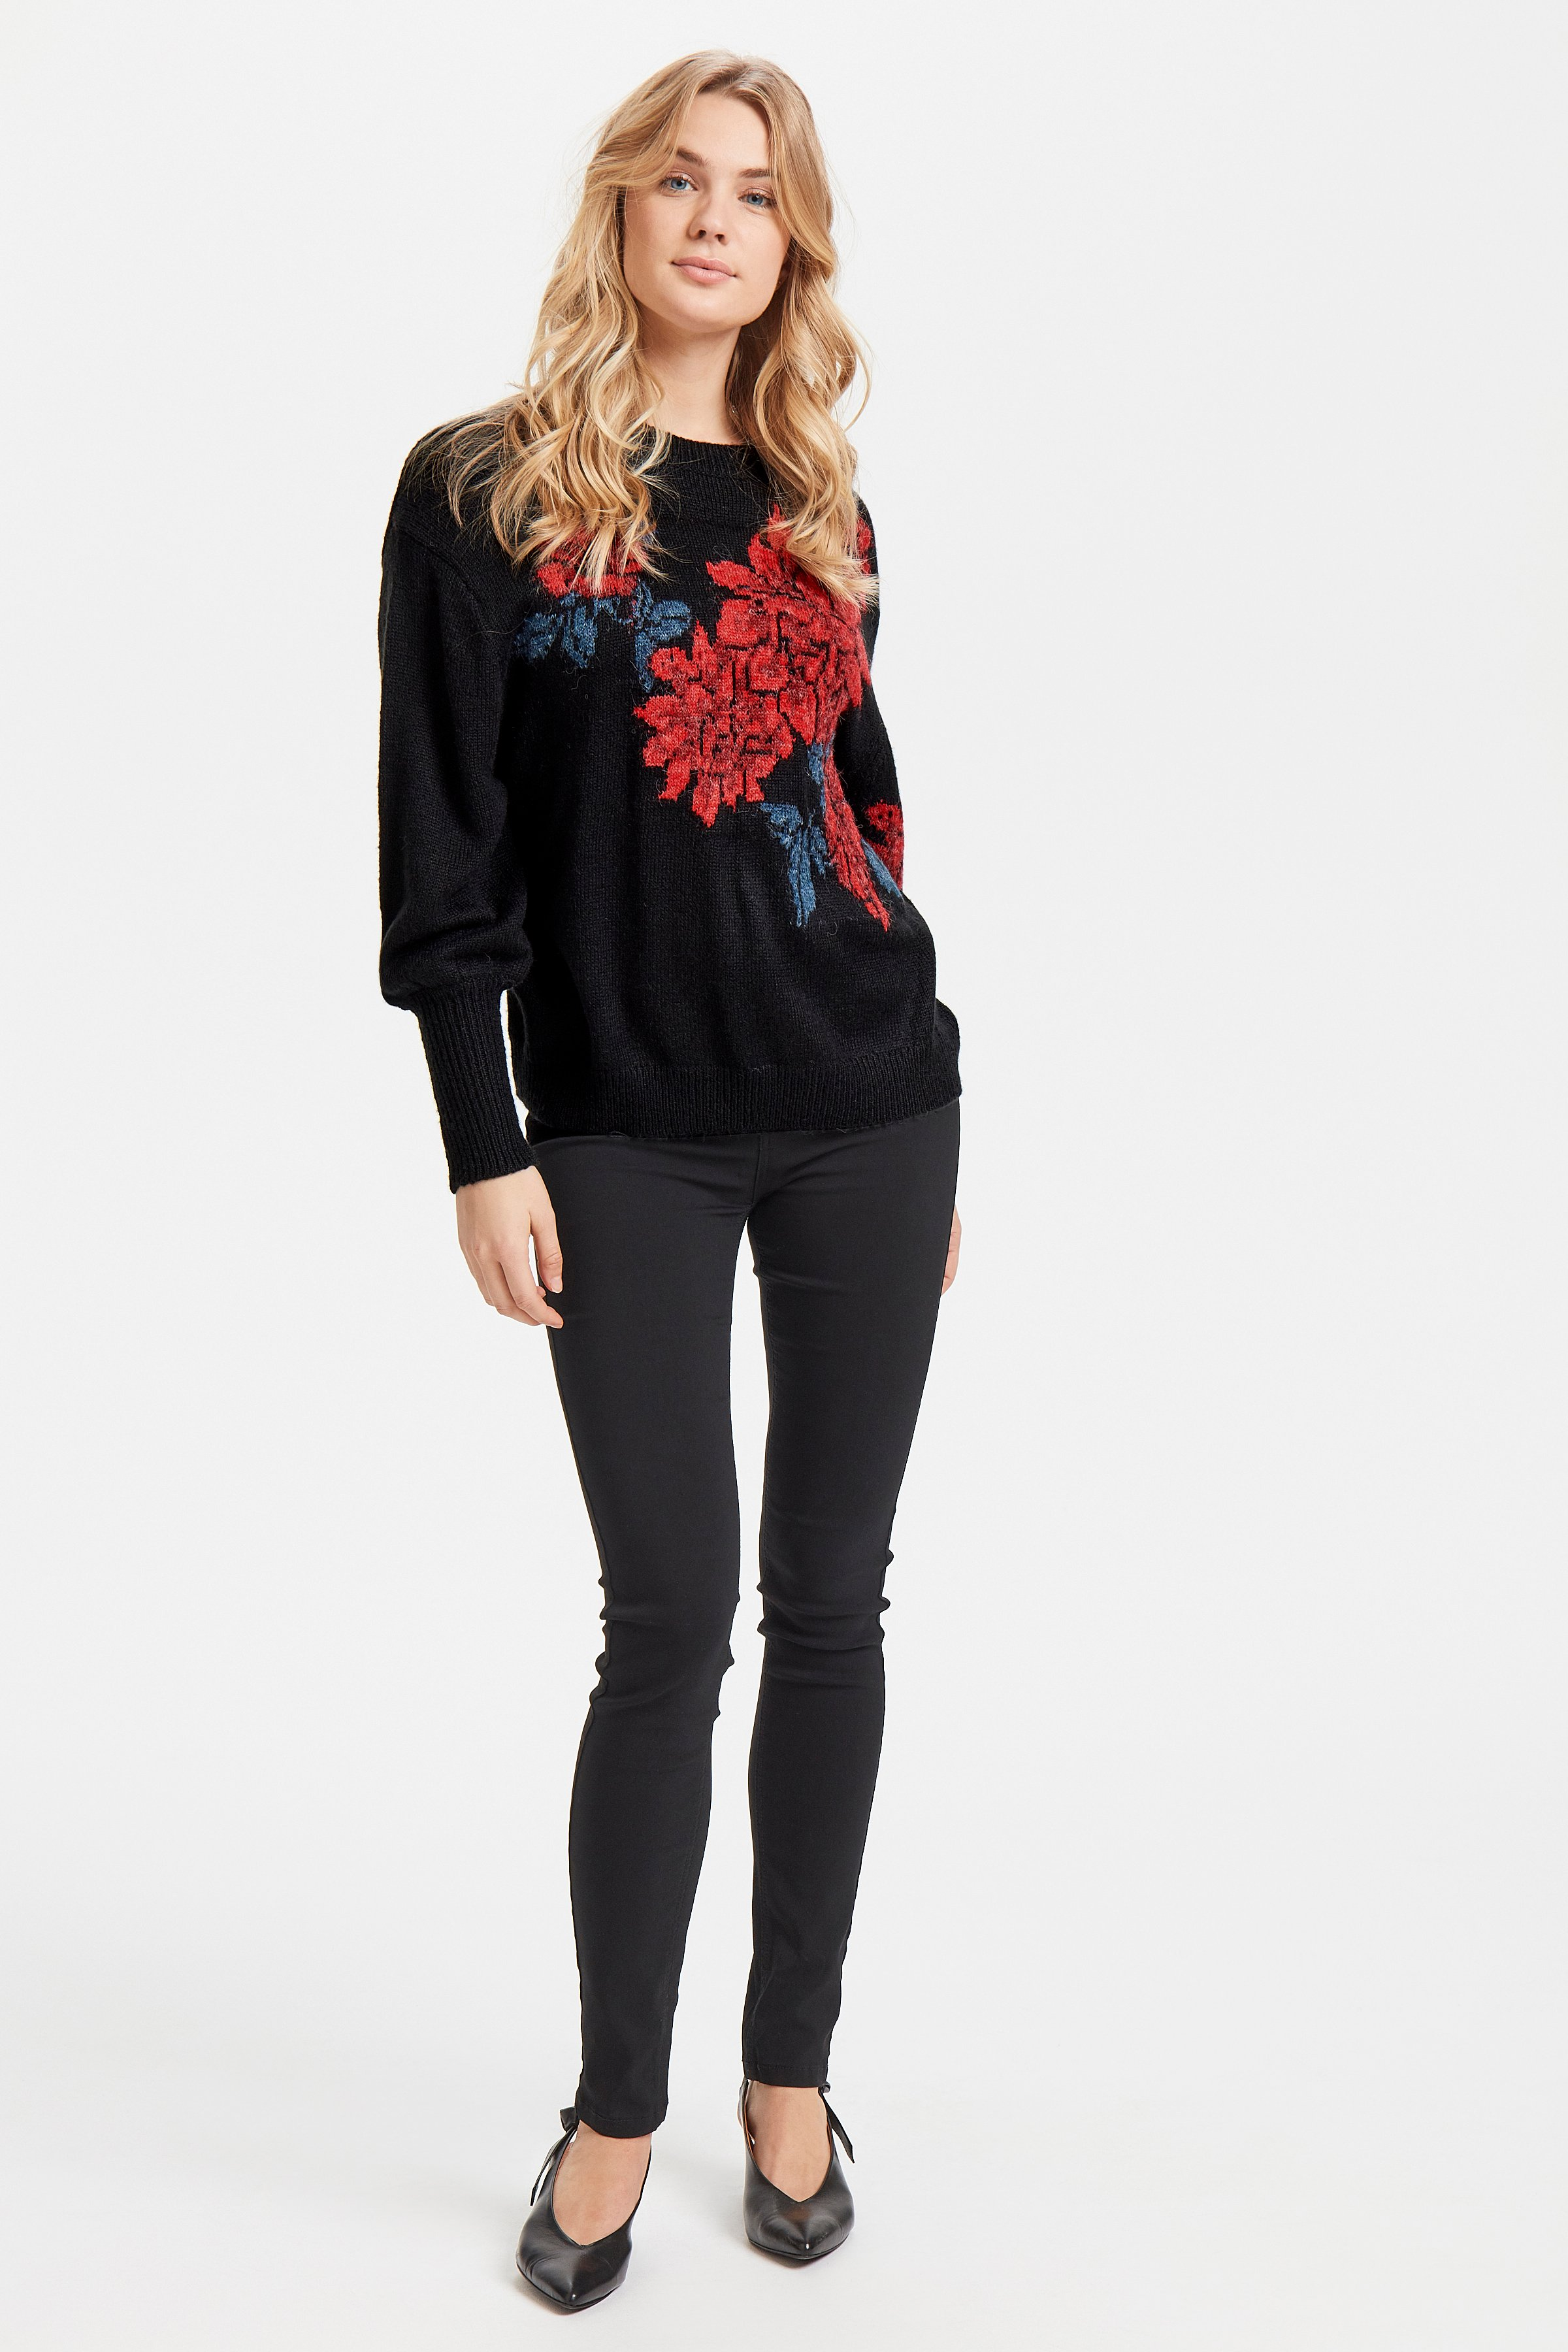 Black combi Knitted pullover from b.young – Buy Black combi Knitted pullover from size XS-XXL here